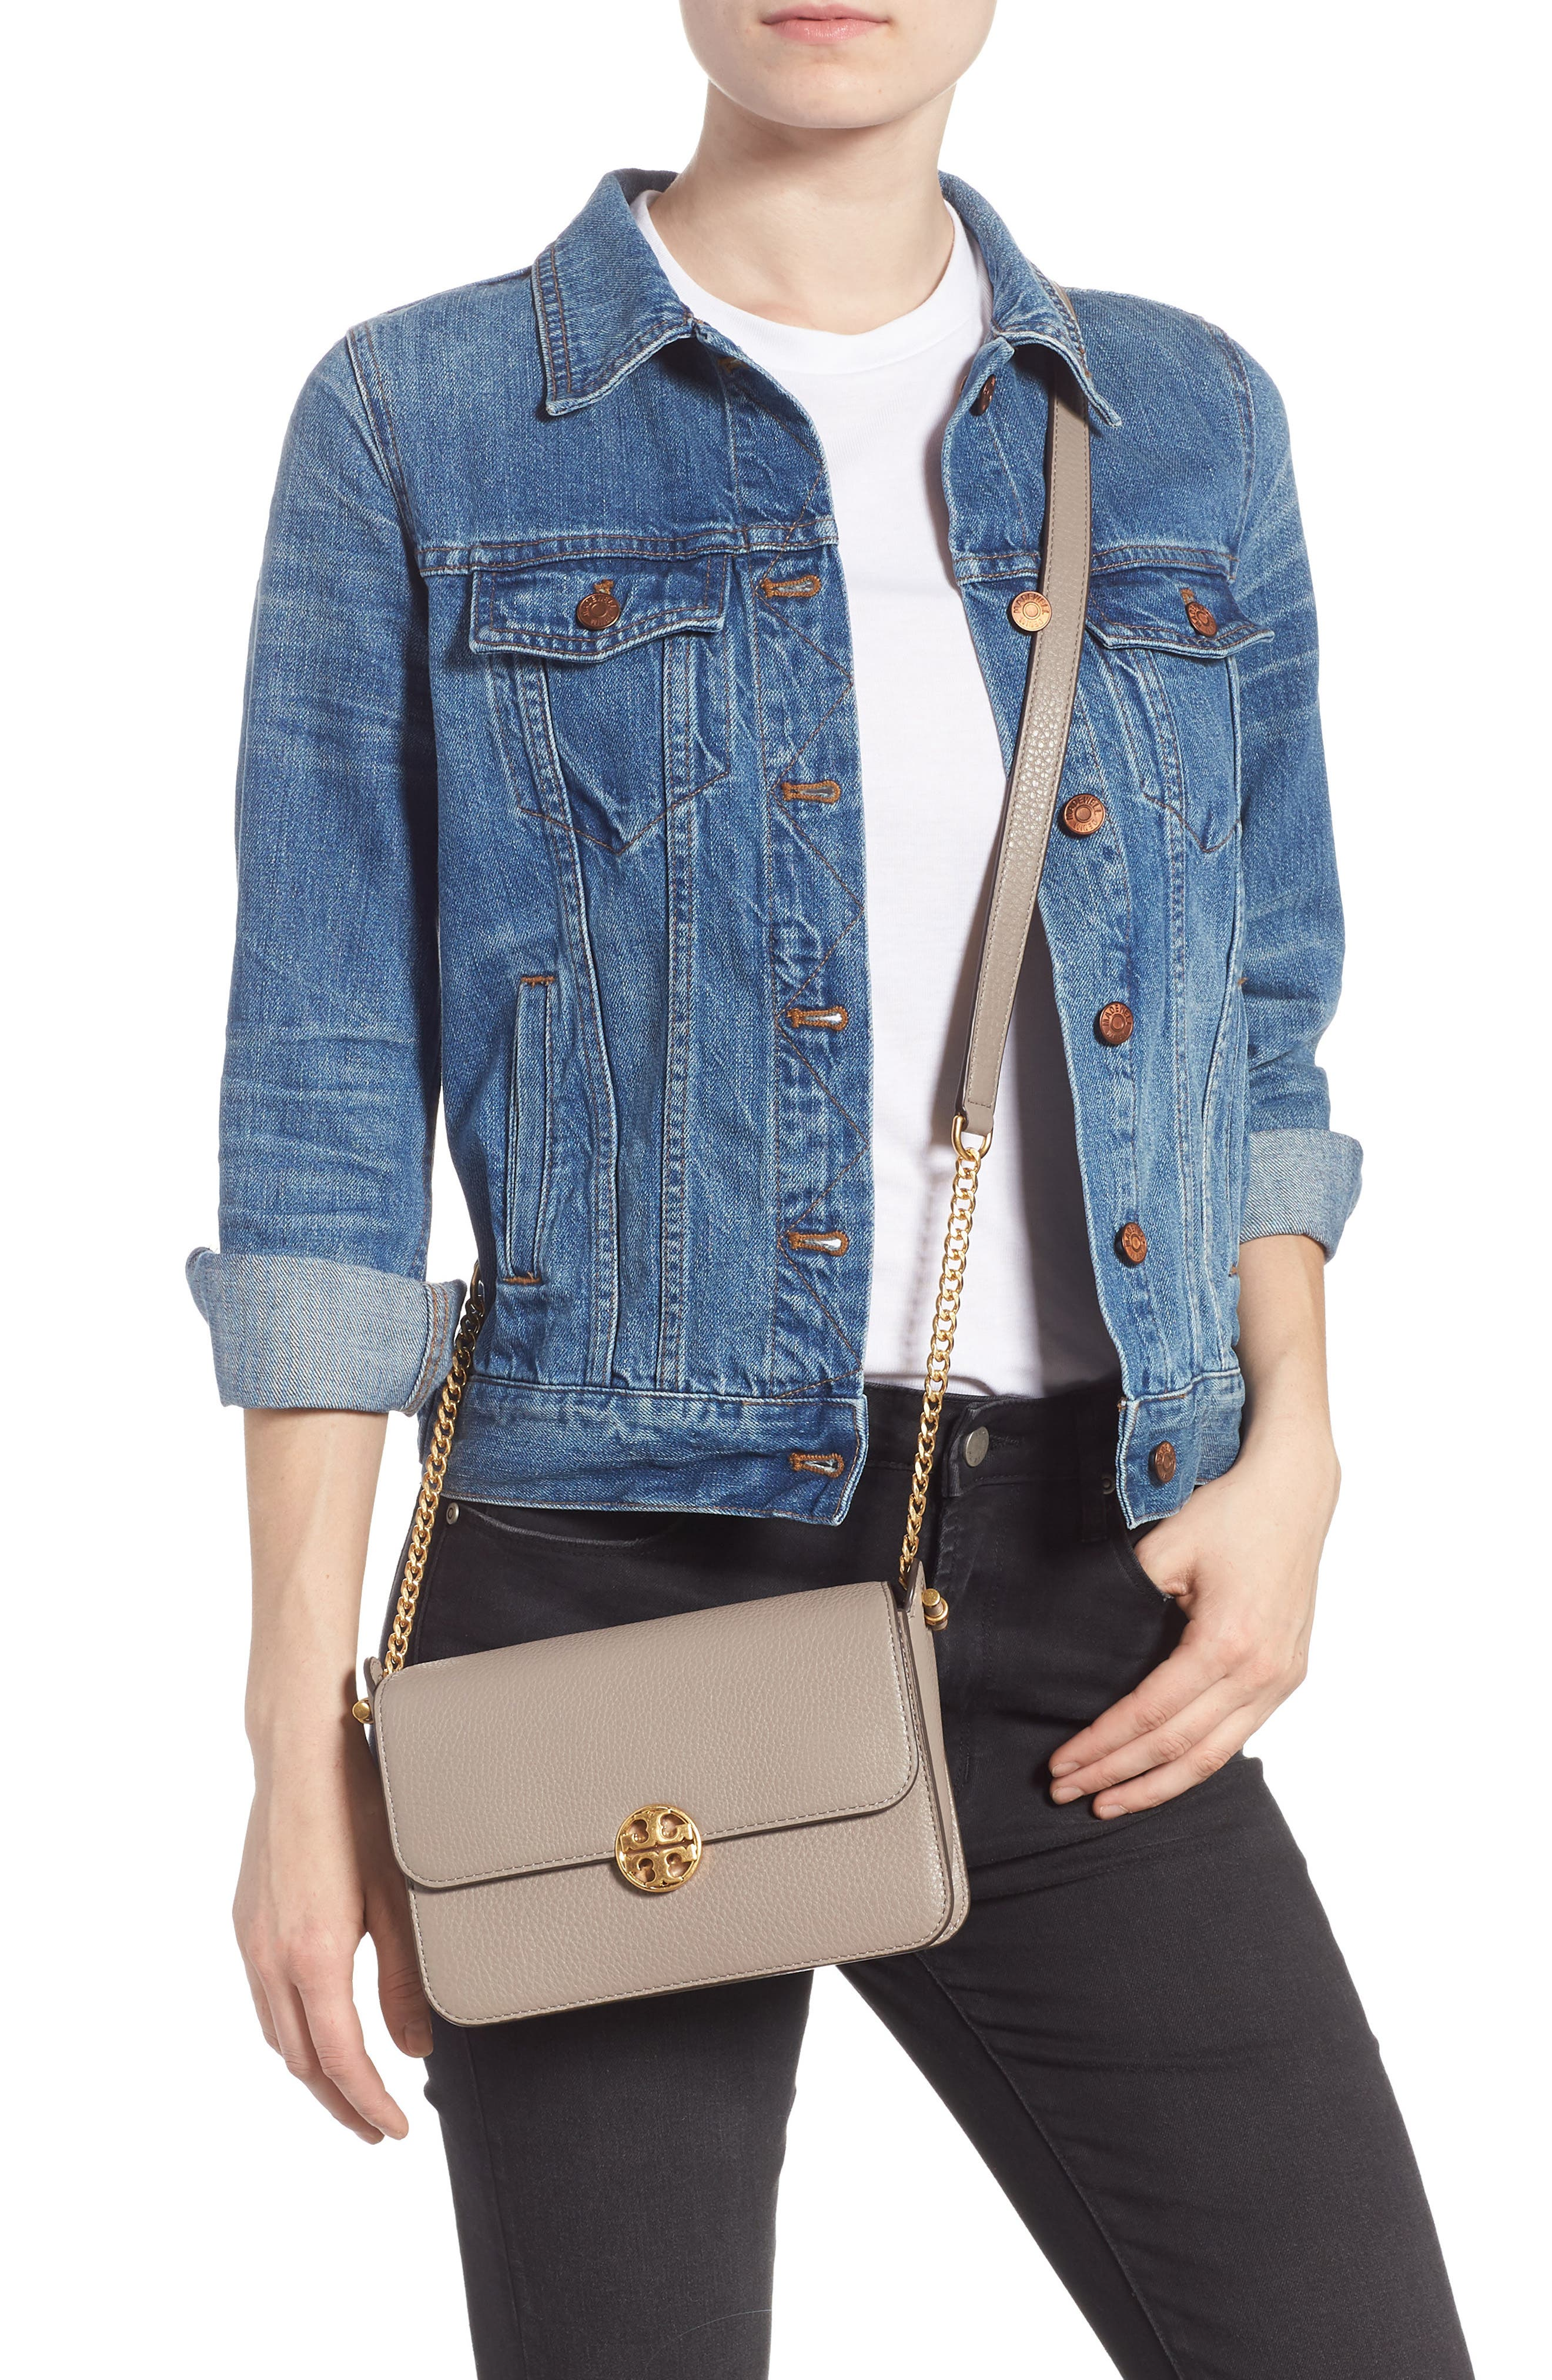 Chelsea Leather Crossbody Bag,                             Alternate thumbnail 2, color,                             GRAY HERON